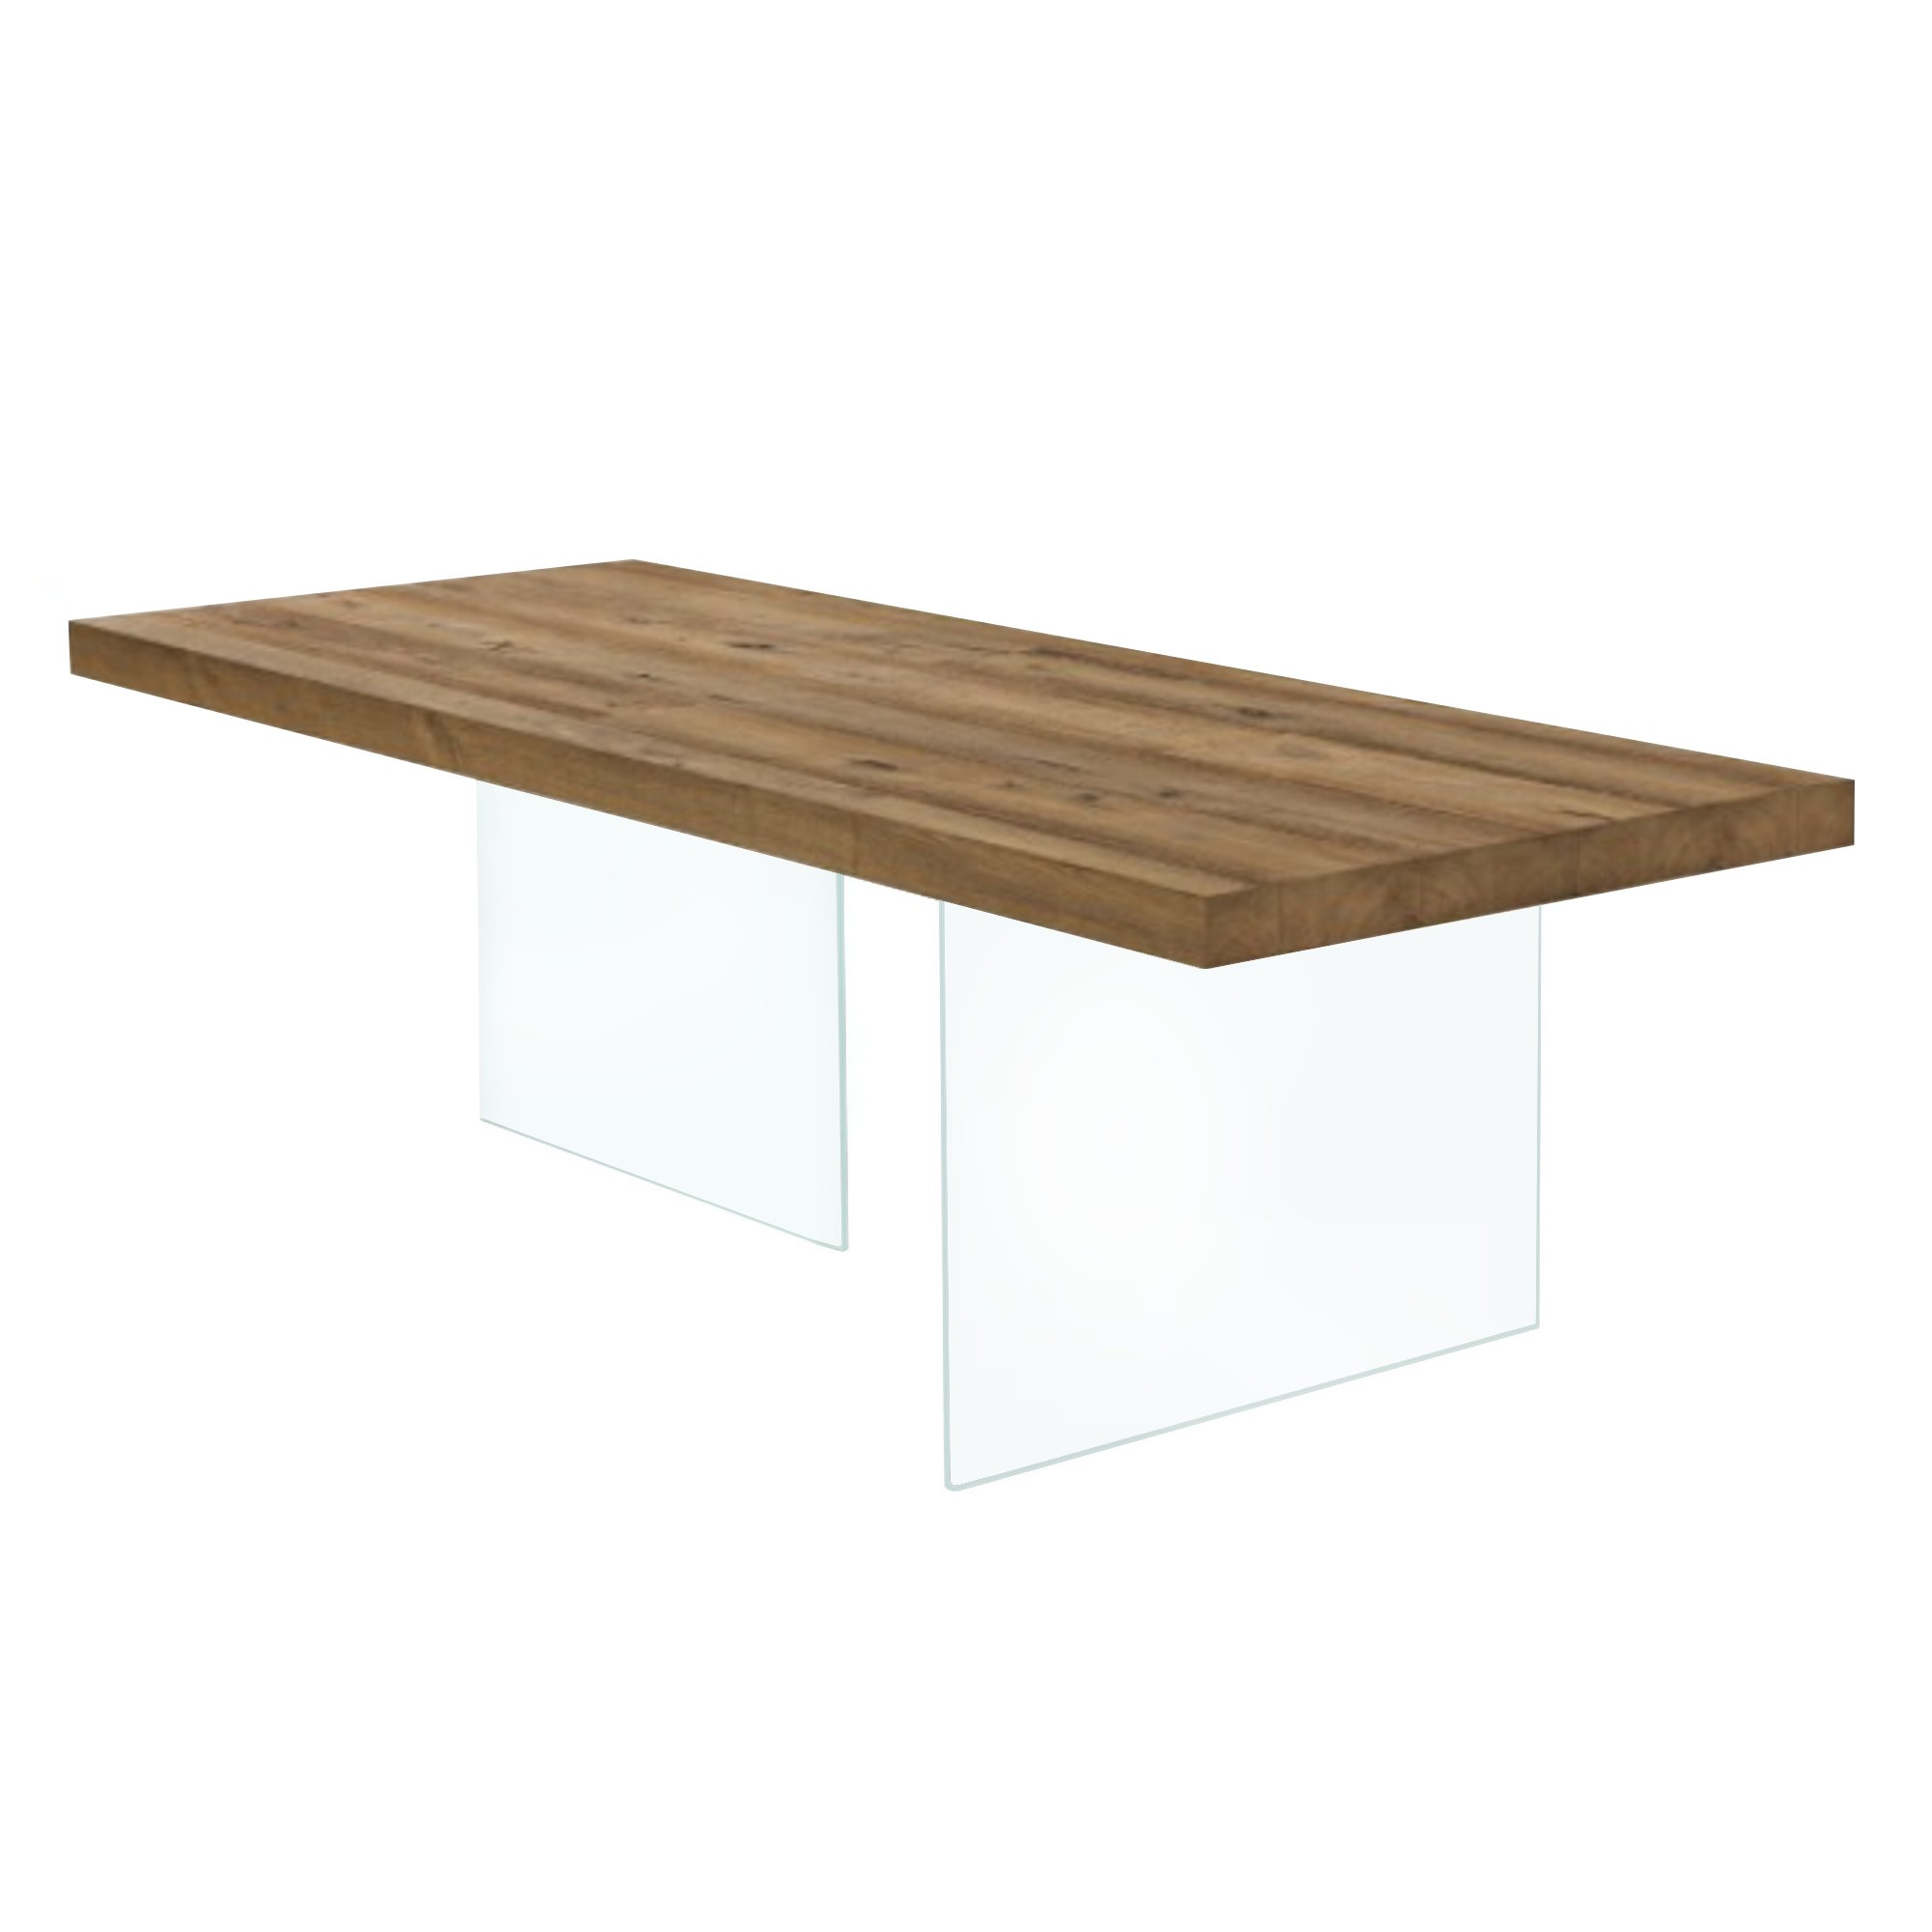 Air wildwood fixed table fixed tables tables lago masonionline - Tavolo lago air wildwood prezzo ...